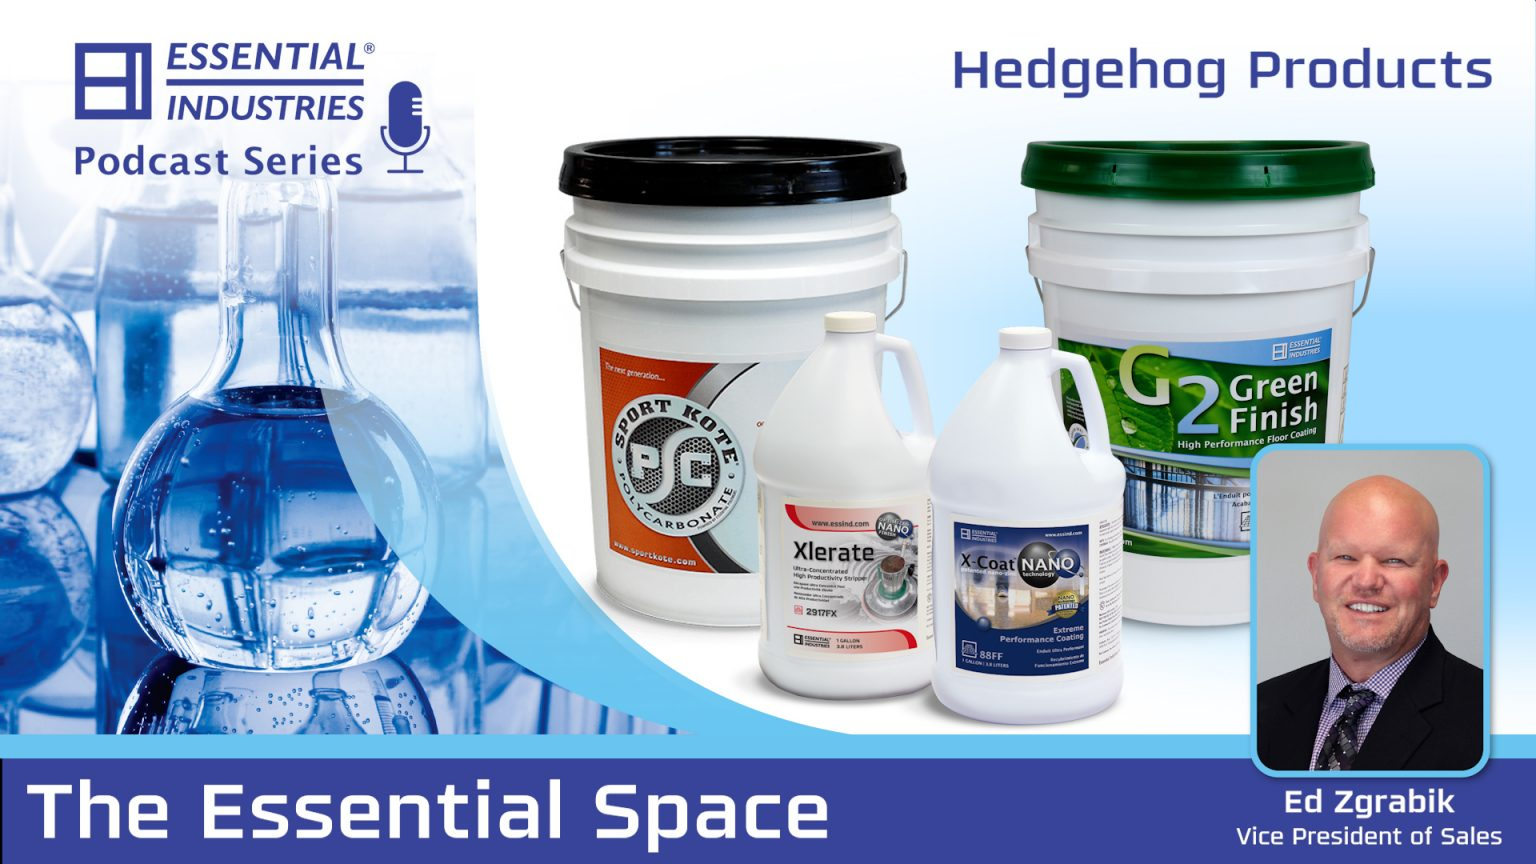 Hedgehog Products